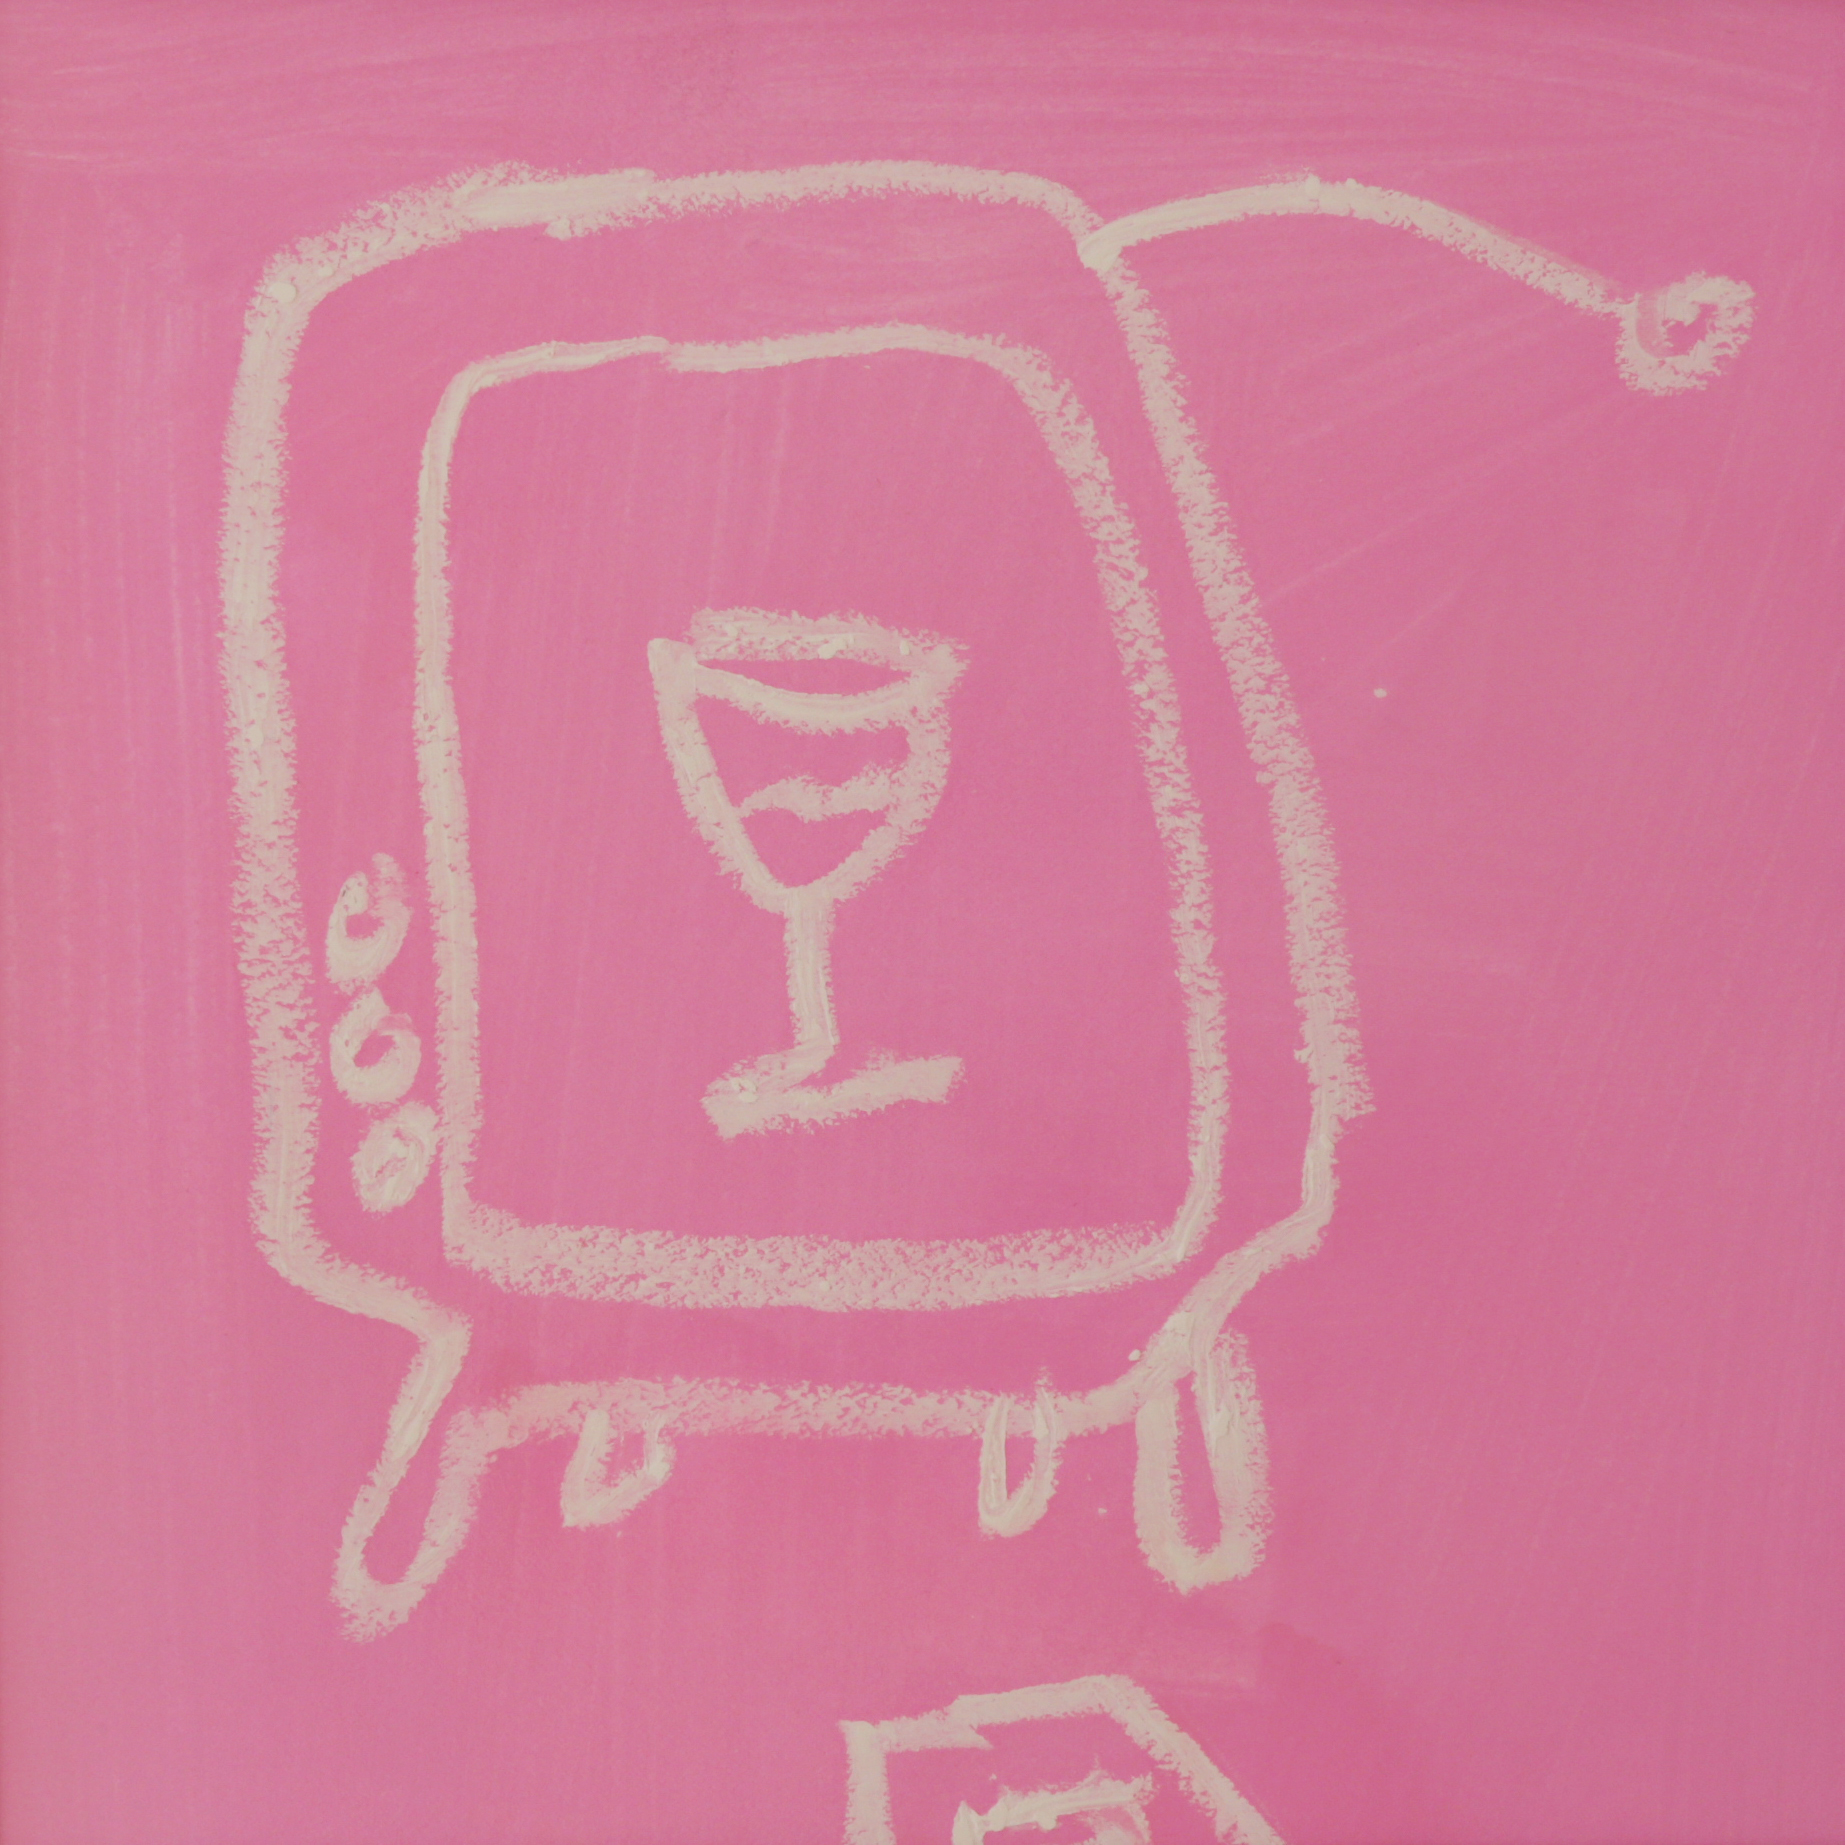 Sin , 2018  Gouache and oil pastel on paper  16 x 16 inches   Sin , a pair of drawings included in the artist's  Rosé Room  series, depicts old-fashioned antenna television sets, in which images of drinking can be seen. In the second iteration, two glasses clink in a social setting. These works comment on the pervasiveness of the American drinking culture that permeates the media.